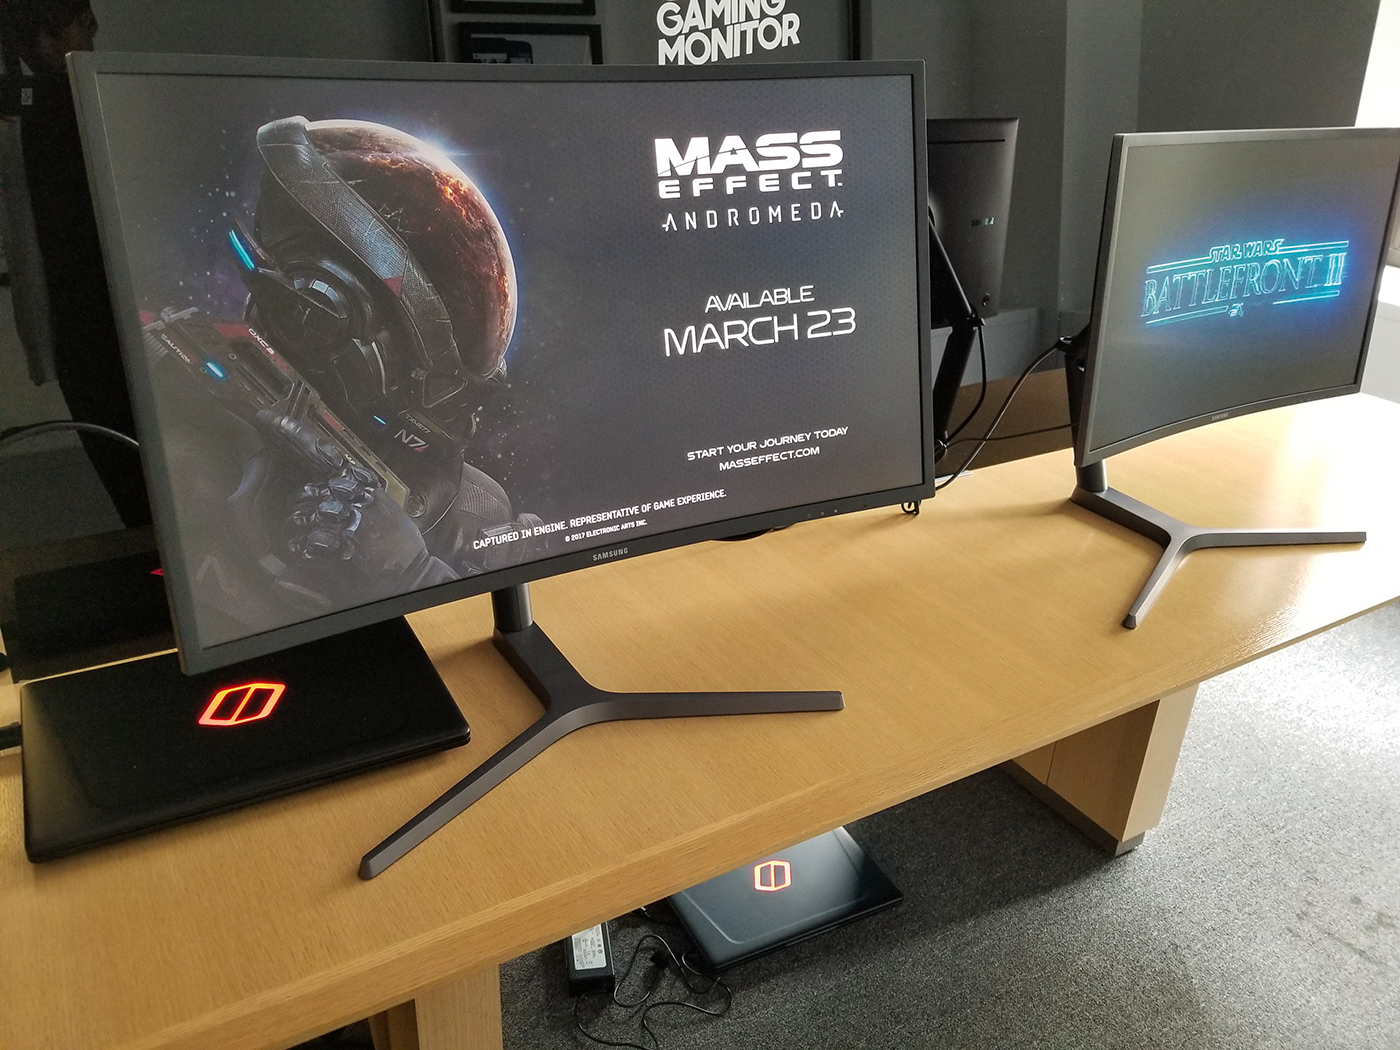 Samsung's new top-end curved gaming monitors are sporting